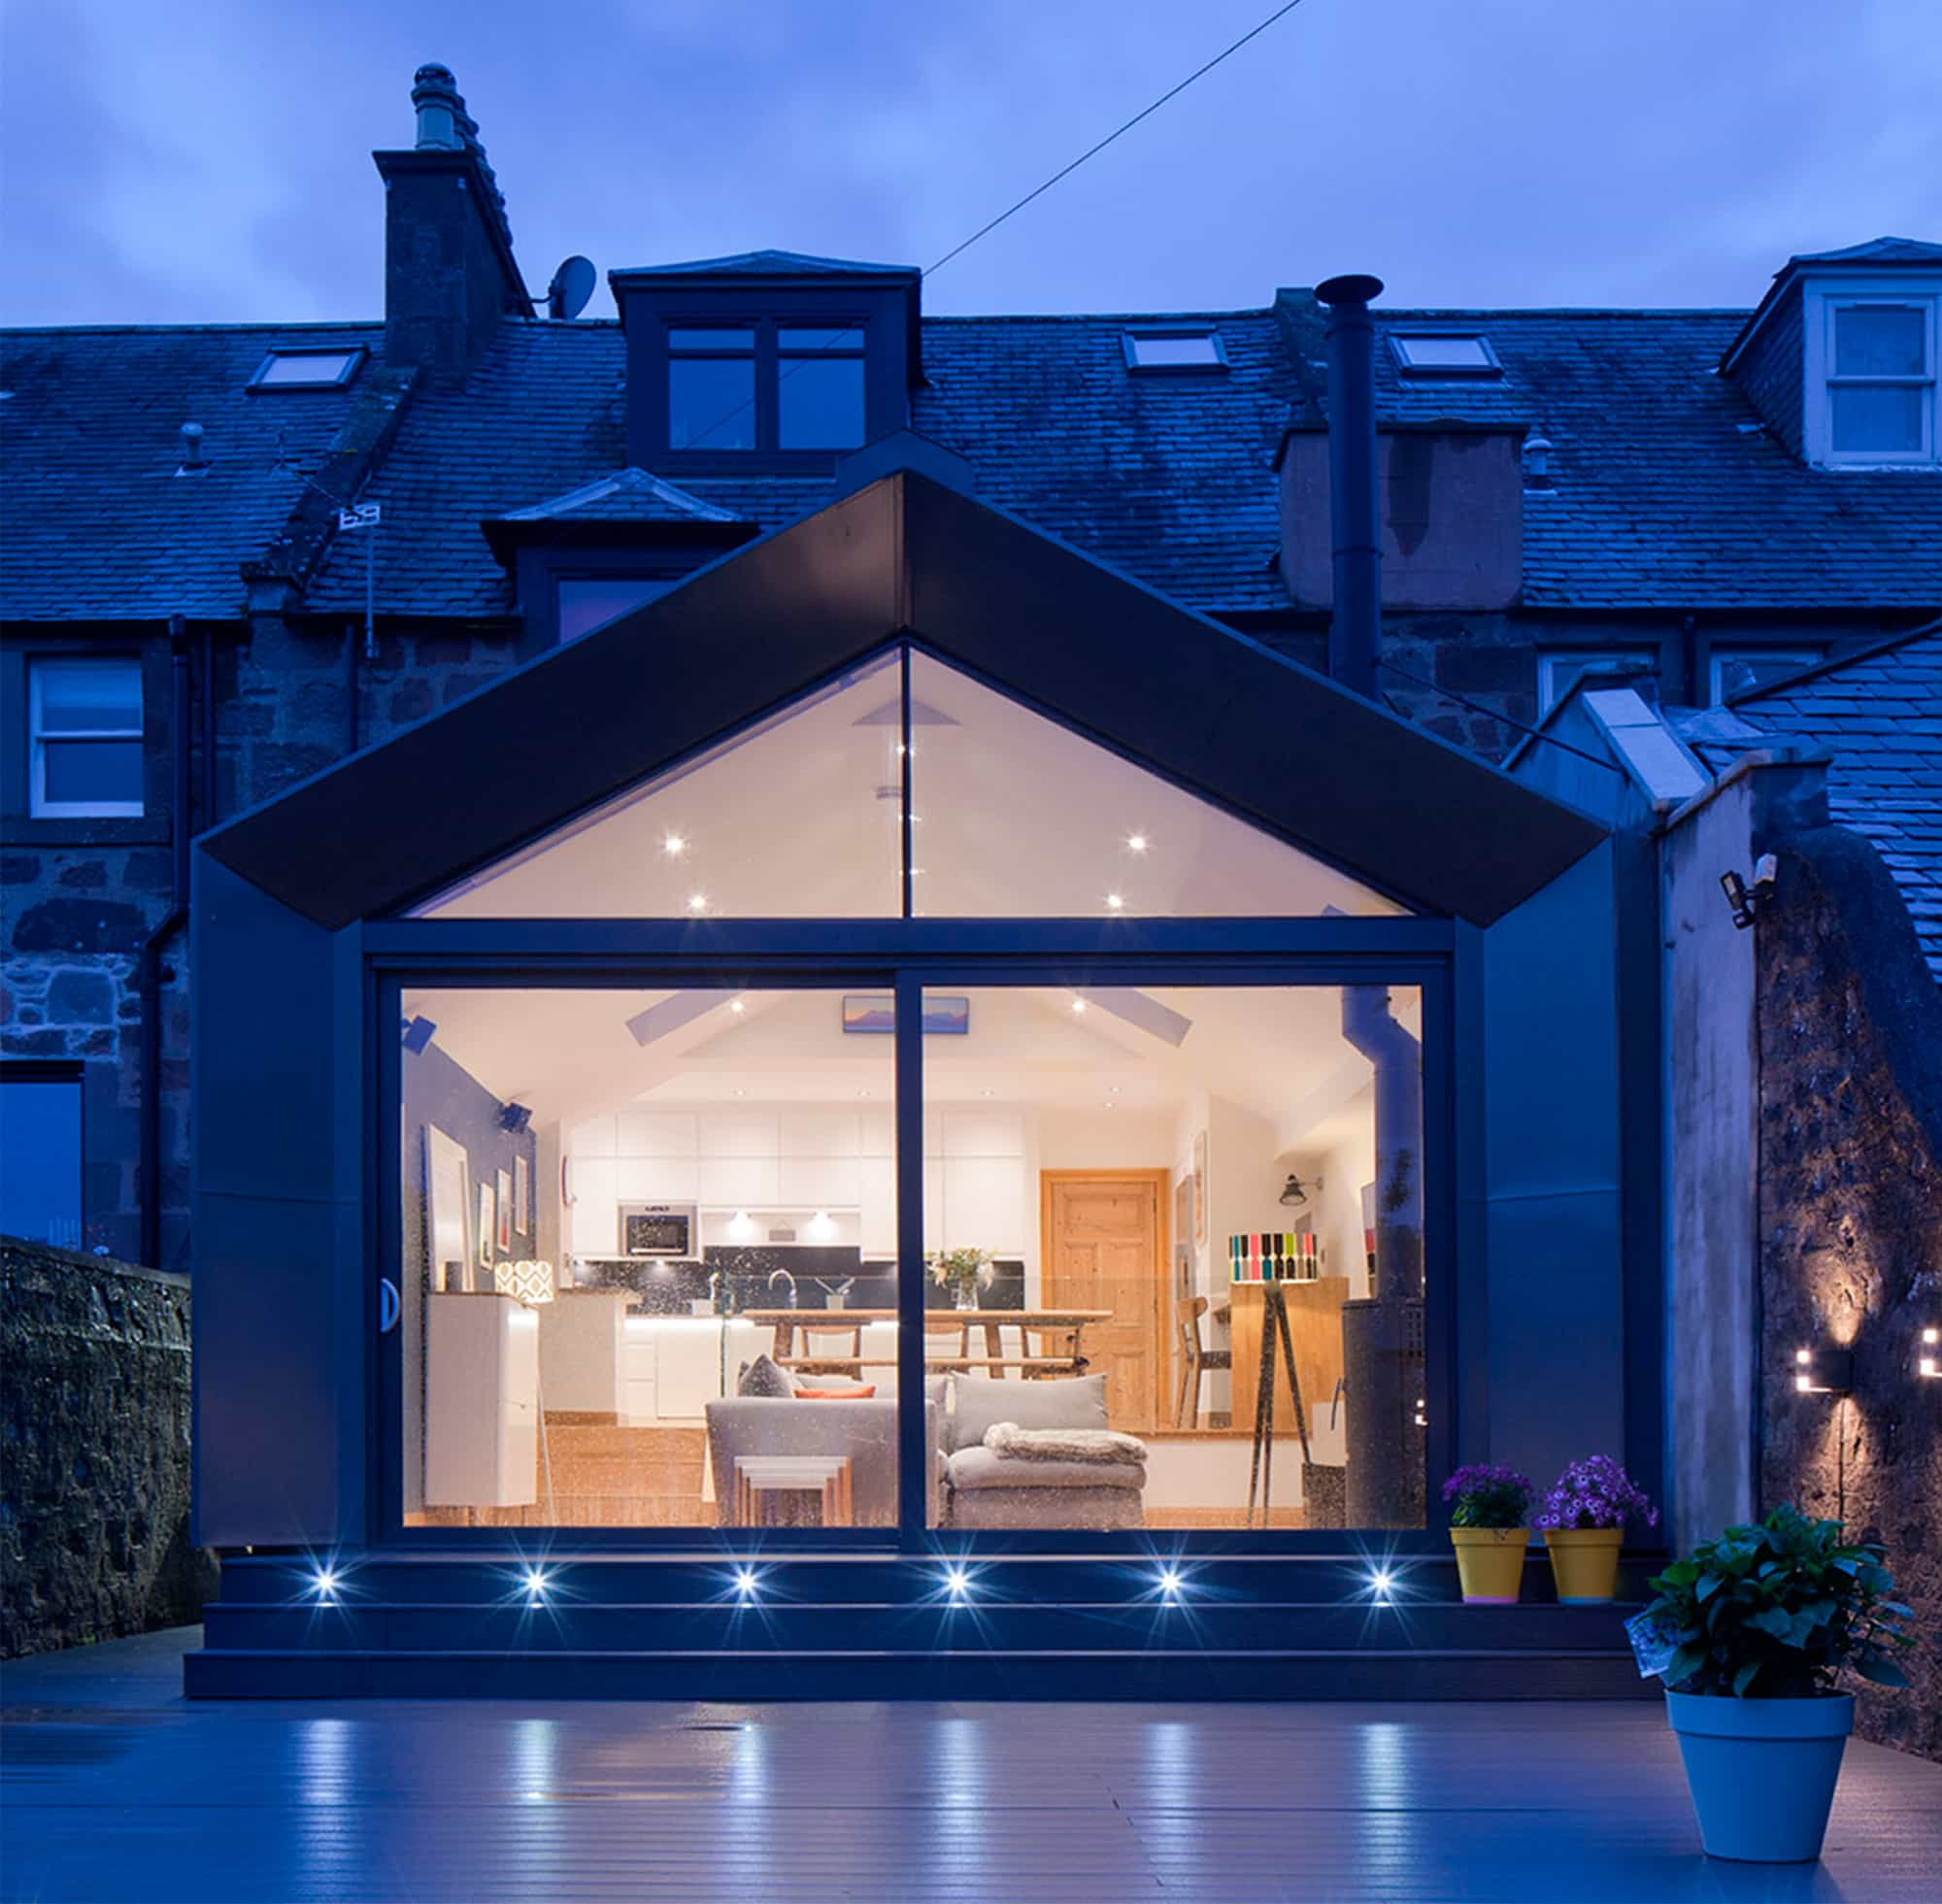 Spacious house extension lit up by blue light